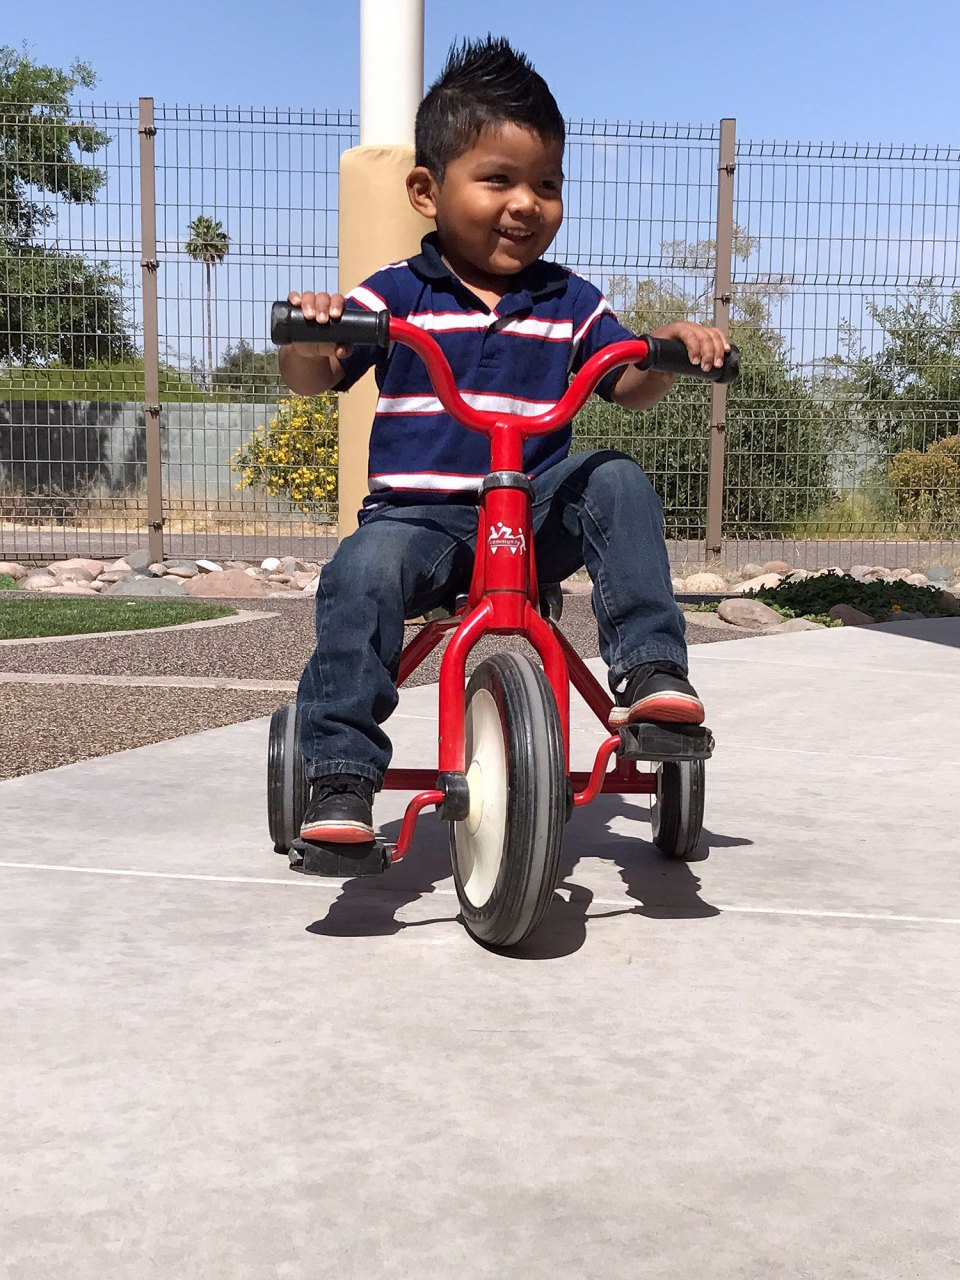 Nathan Jaramillo rides a tricycle during outdoor time at Educare Arizona in Phoenix. Improved gross motor skills are an important part of healthy development for 2-year-olds. Lillian Mongeau/The Hechinger Report